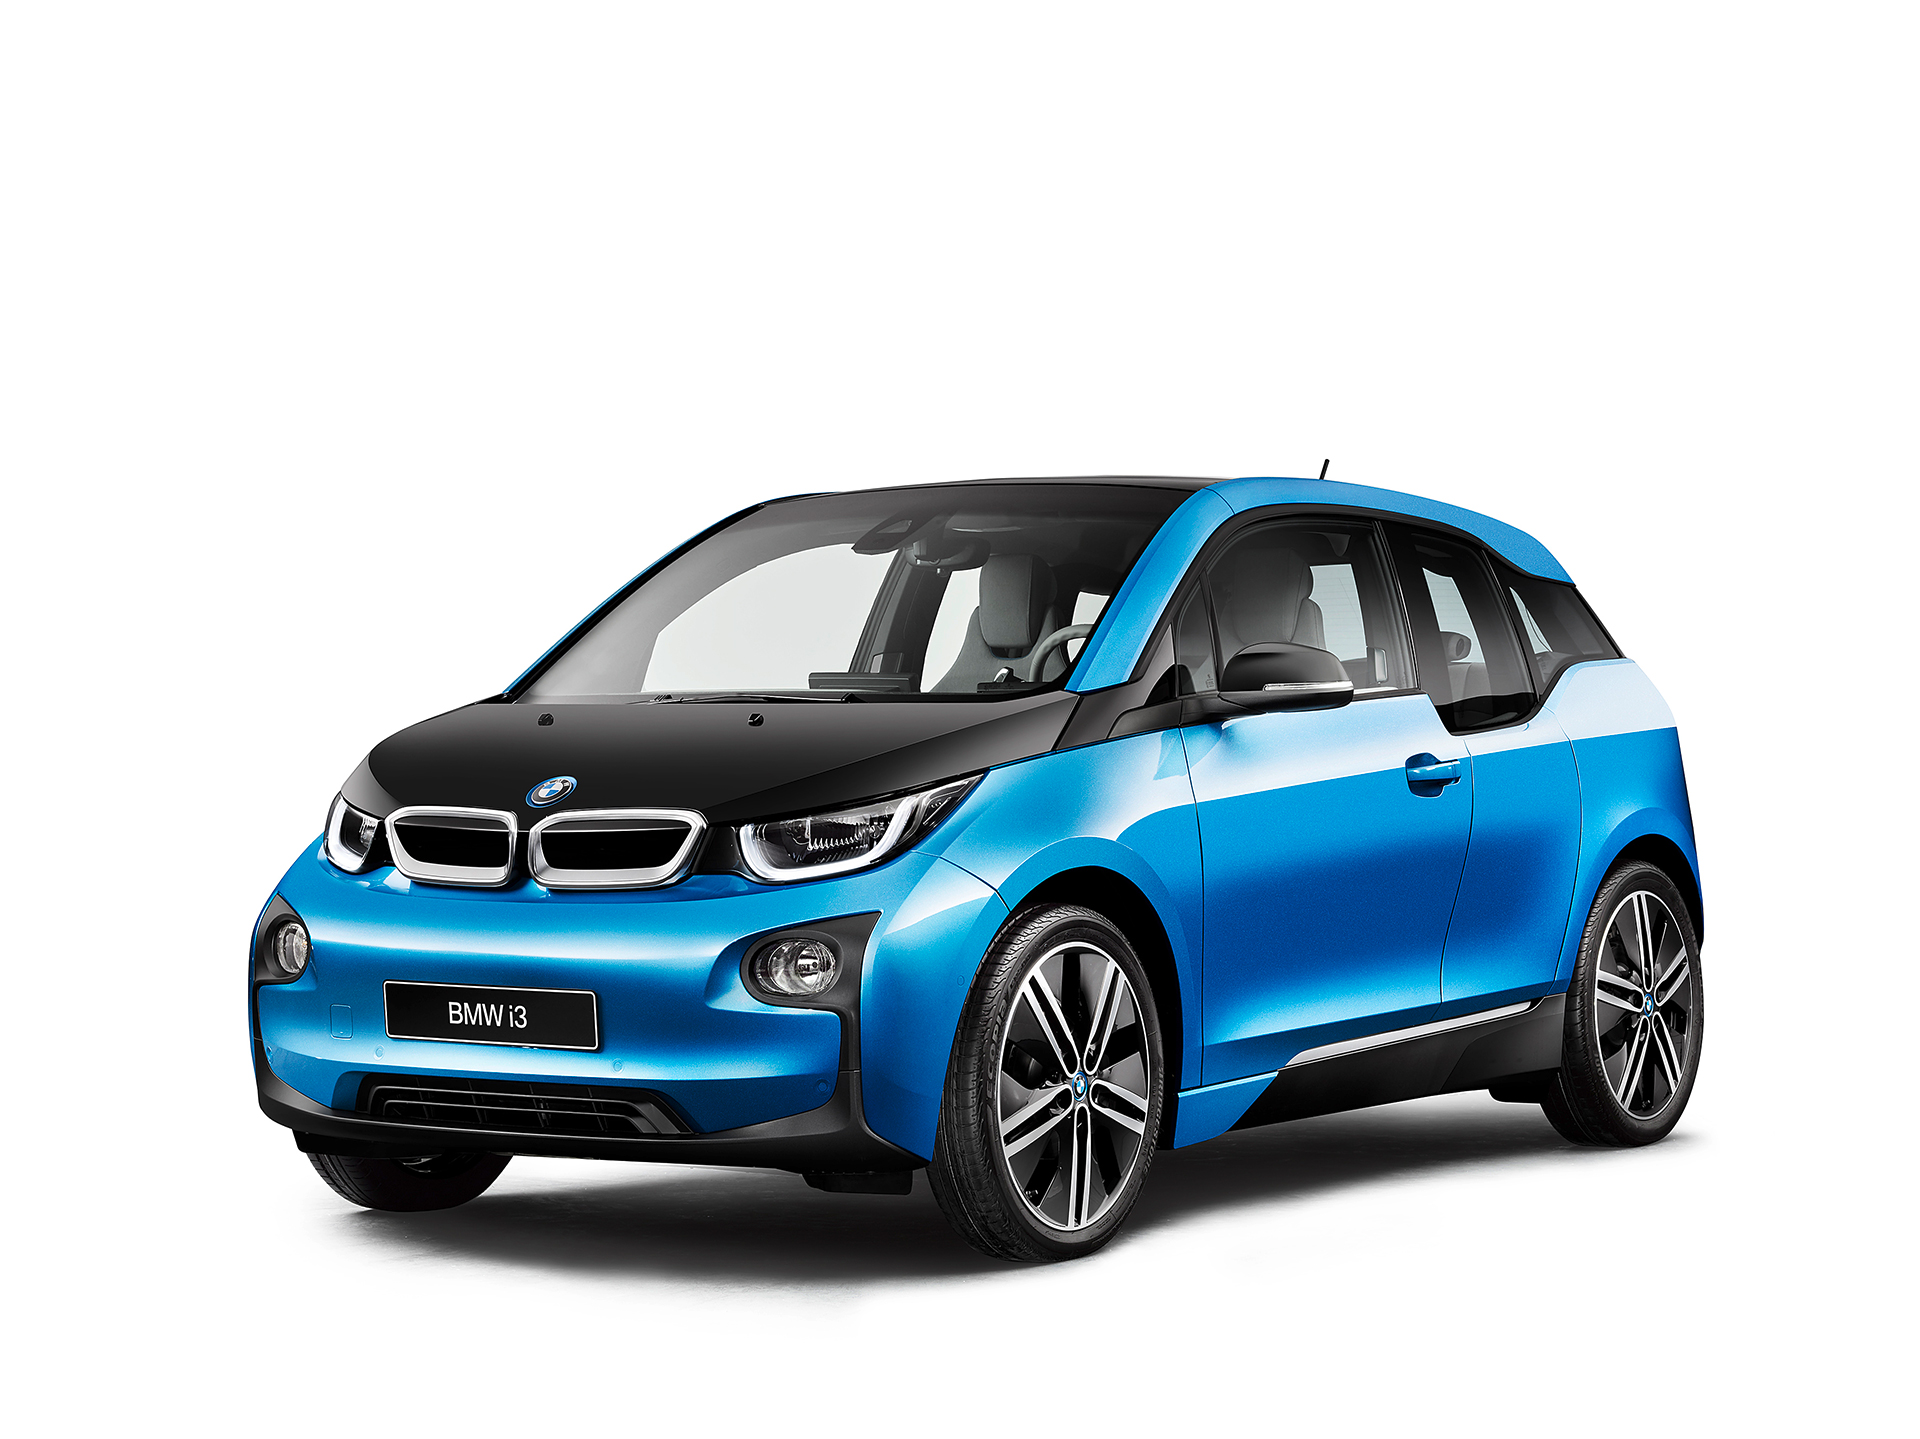 BMW i3 94ah - 2017 - front side-face / profil avant